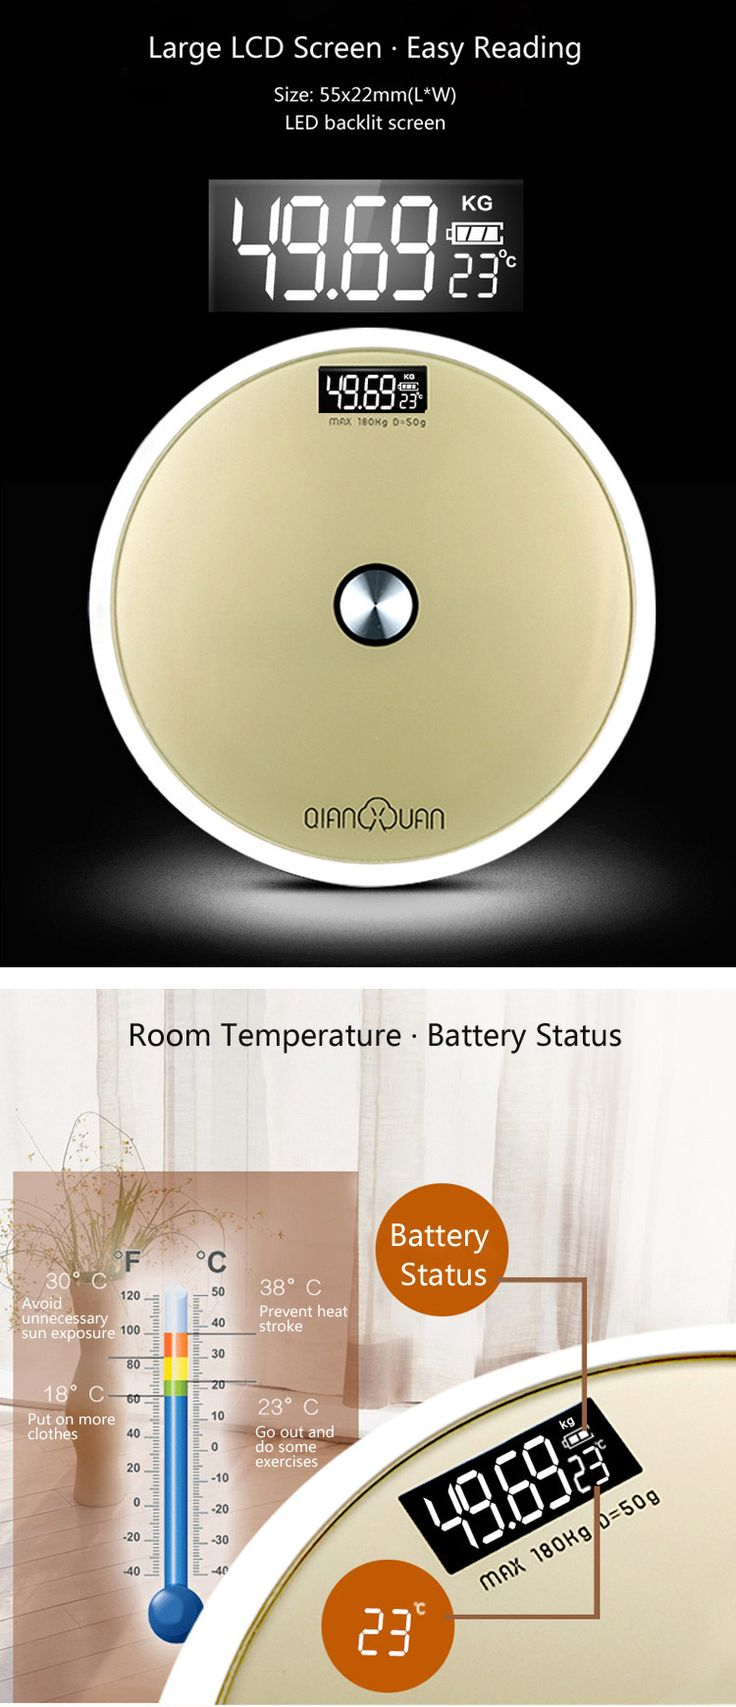 LCD Round Bathroom Electronic Scale with Room Temperature Measurement Sensor Switch Weighing Balance